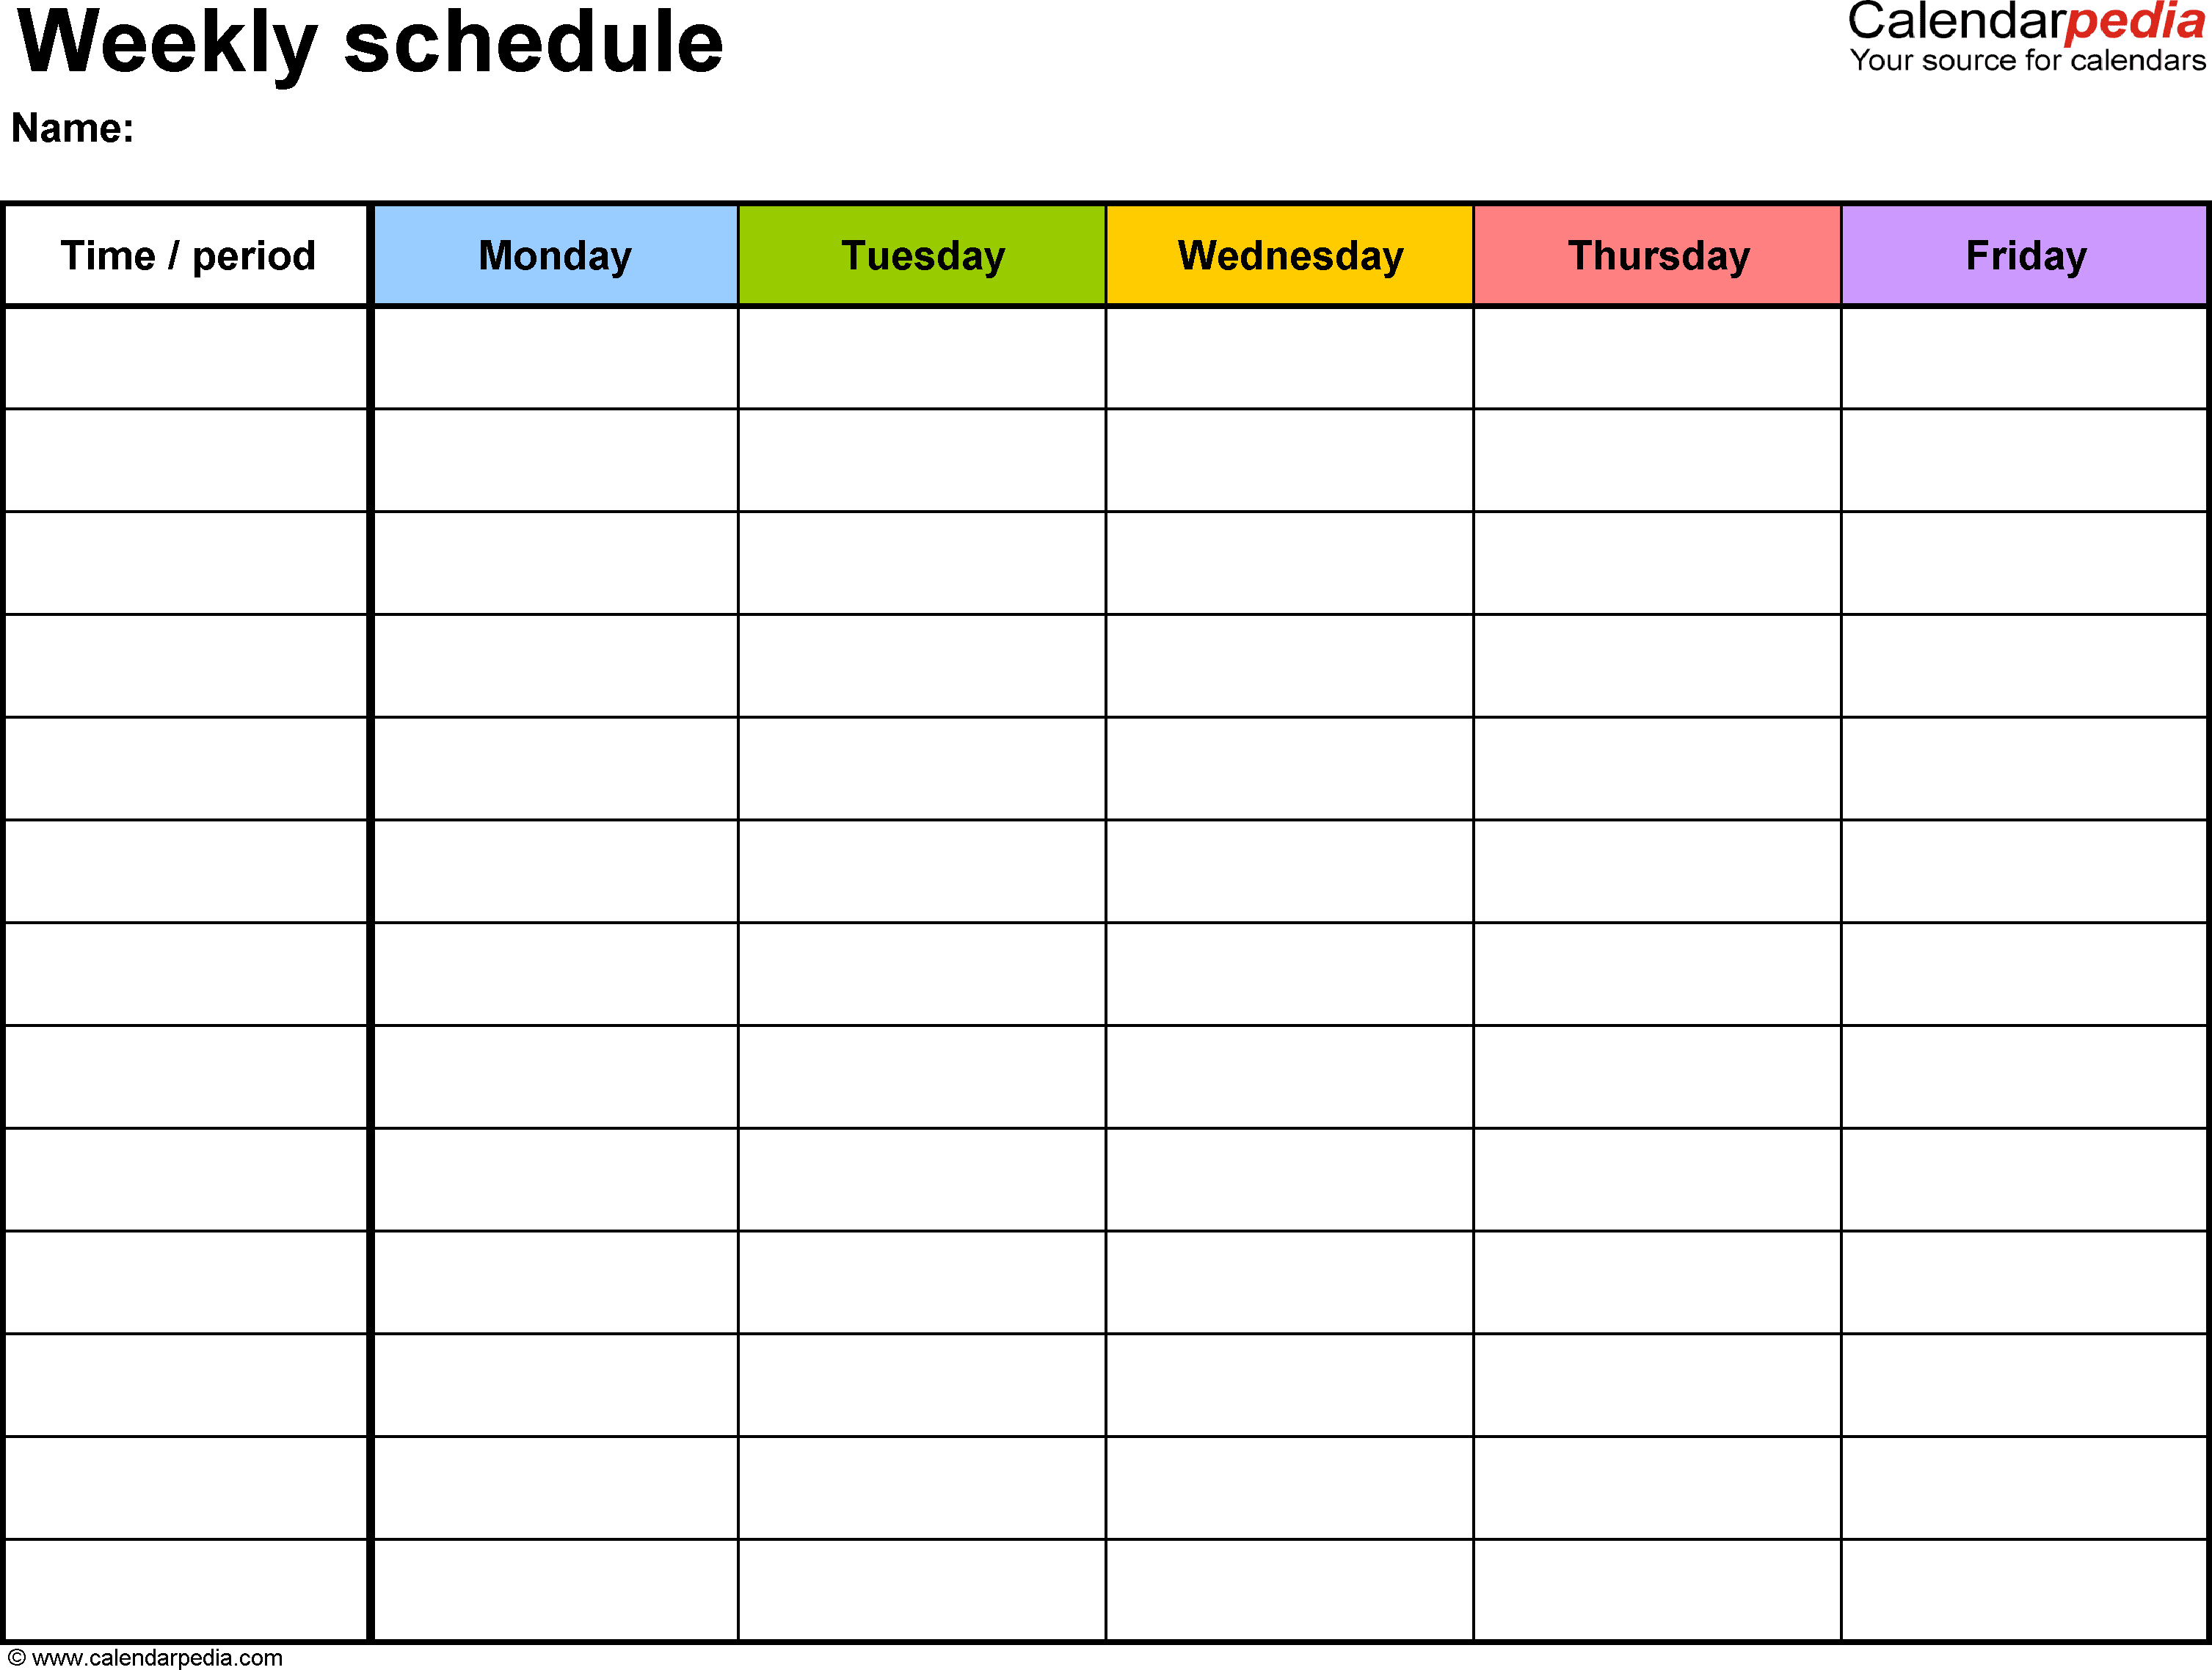 Free Weekly Schedule Templates For Word - 18 Templates with 6 Week Blank Schedule Template